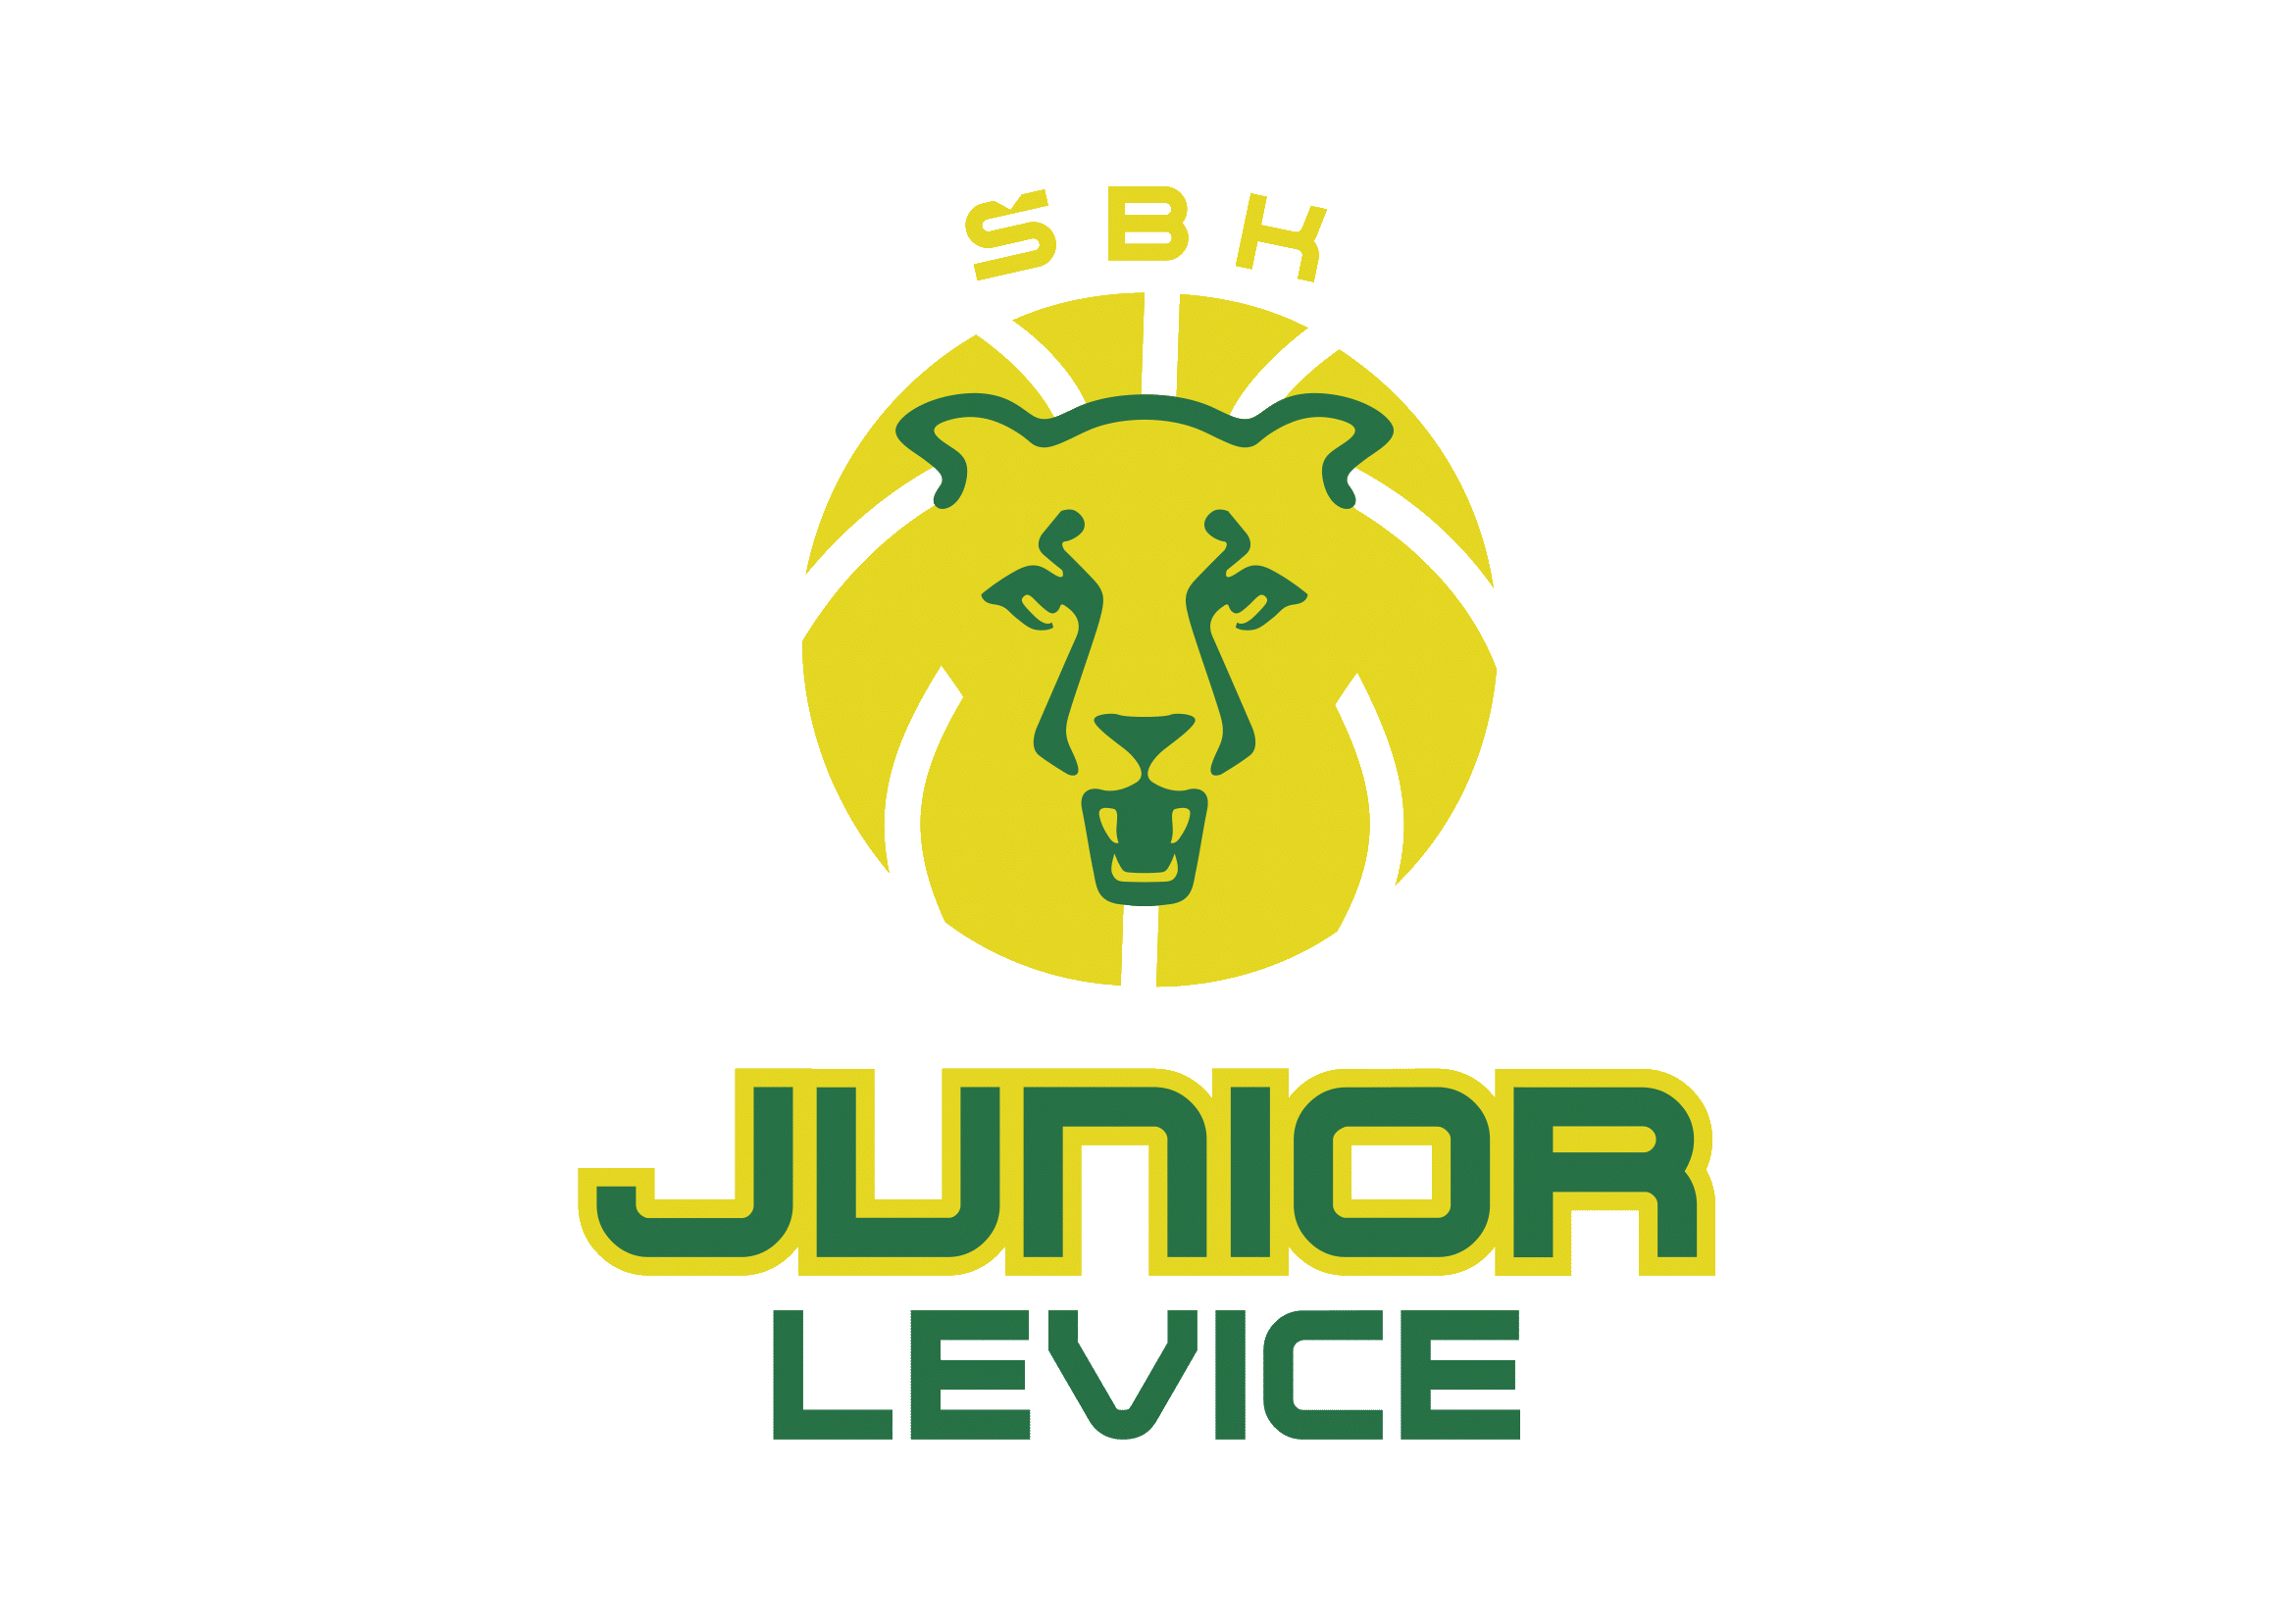 ŠBK JUNIOR LEVICE